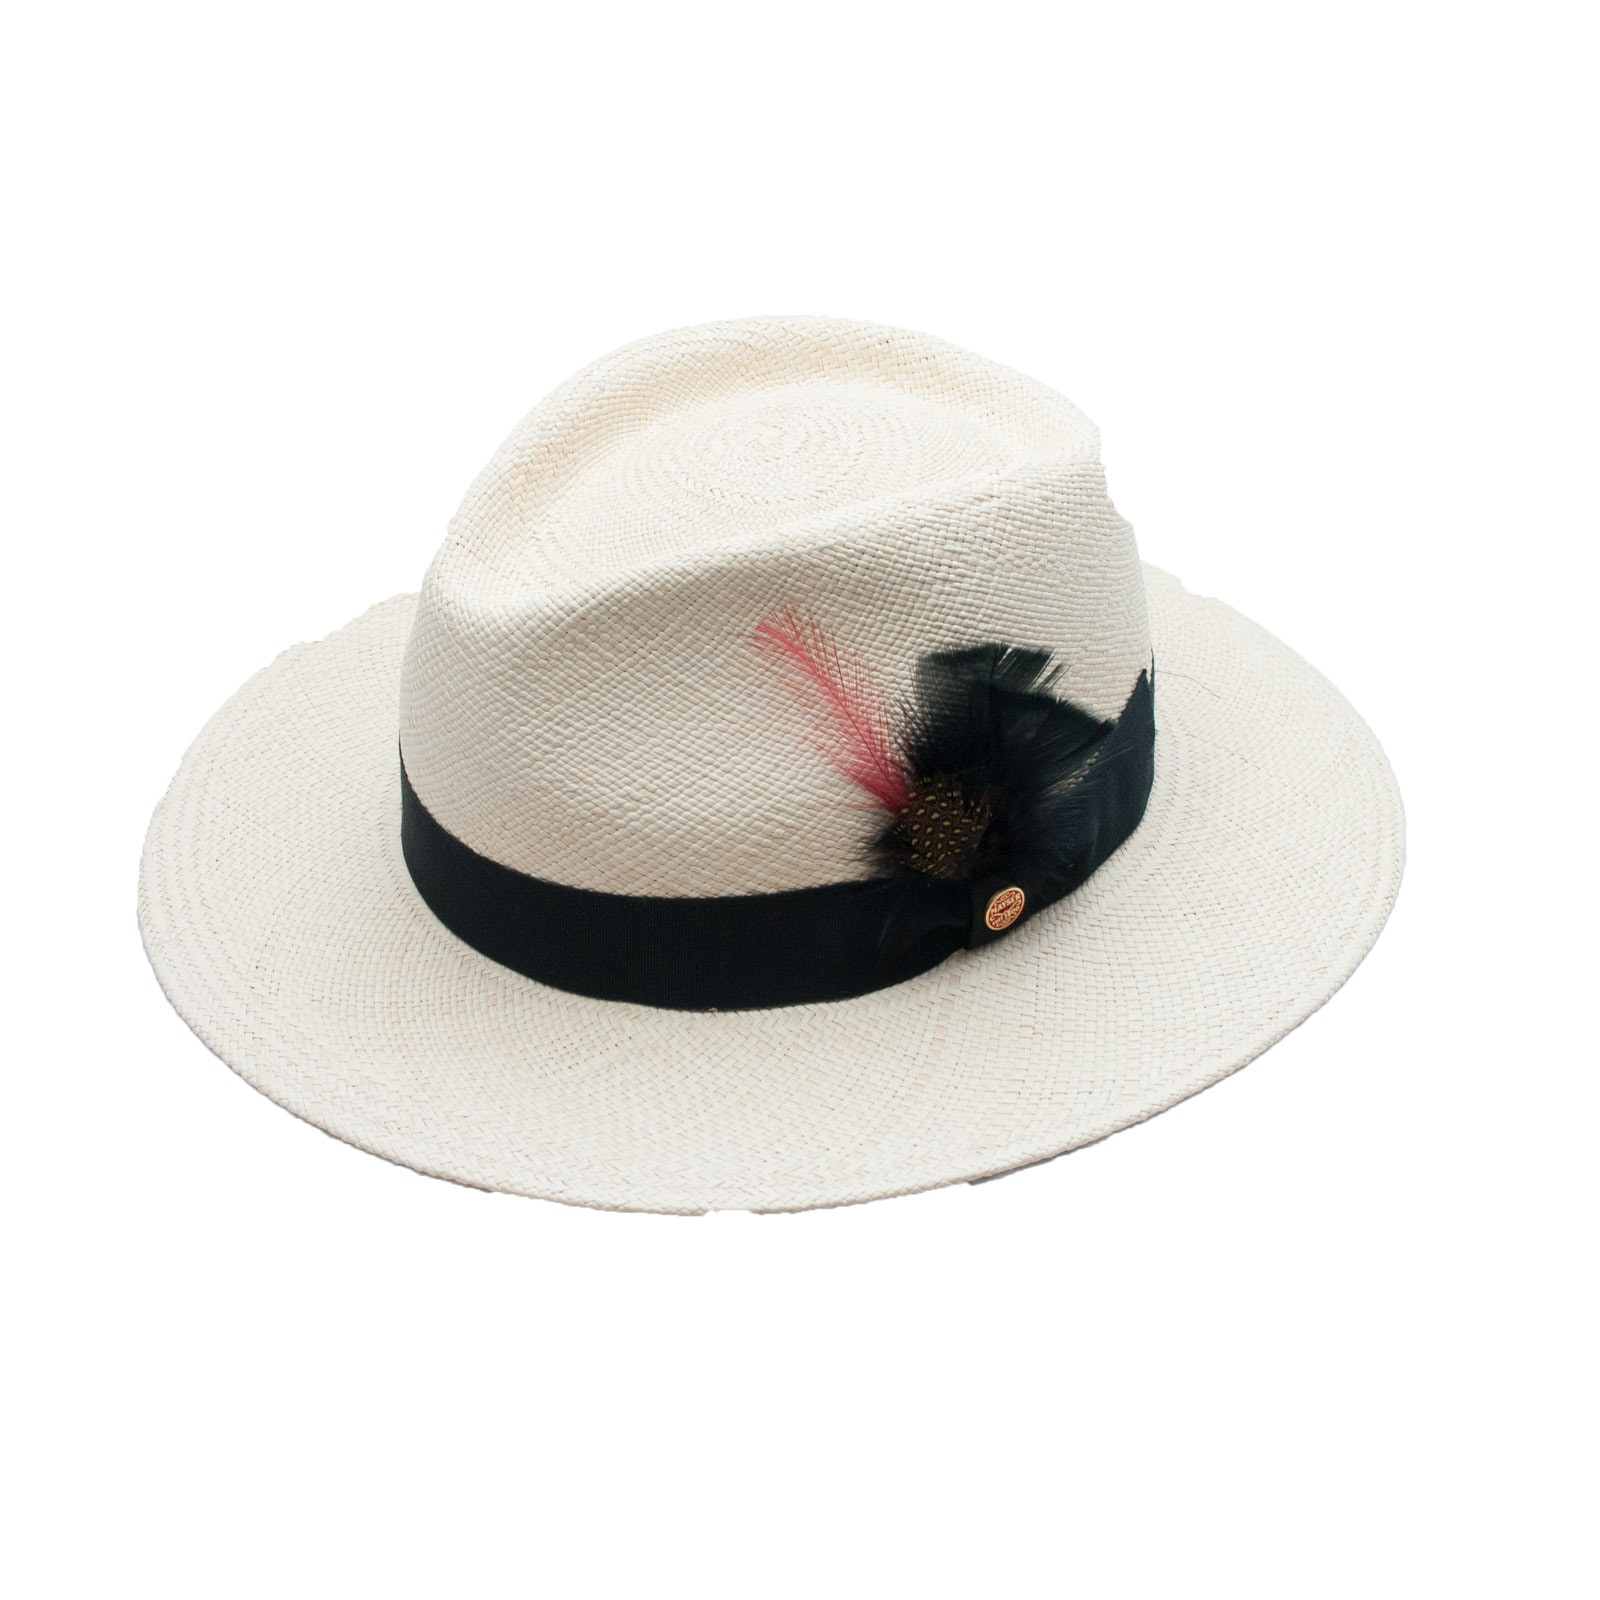 Men's Handwoven Mayser Woven Panama Hat for Batsakes Hat Shop with Box